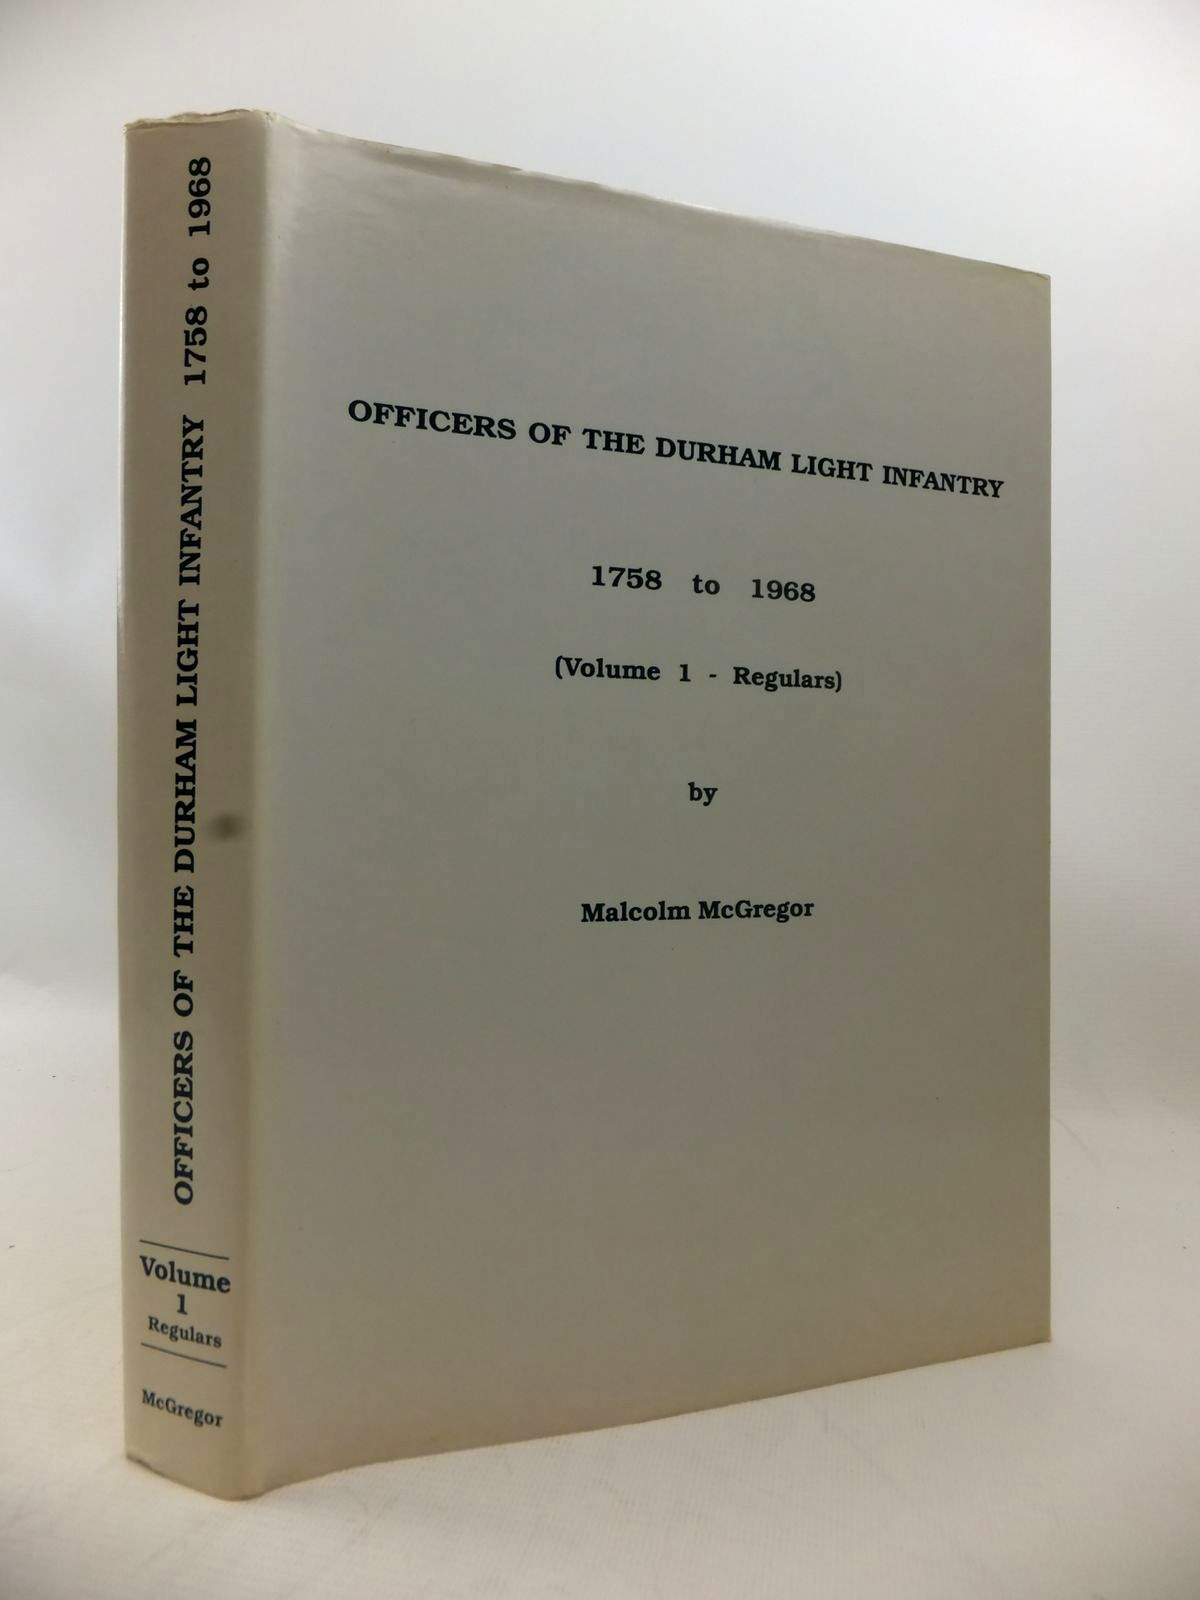 Photo of OFFICERS OF THE DURHAM LIGHT INFANTRY 1758 TO 1968 (VOLUME 1 - REGULARS) written by McGregor, Malcolm published by M. McGregor (STOCK CODE: 1814034)  for sale by Stella & Rose's Books